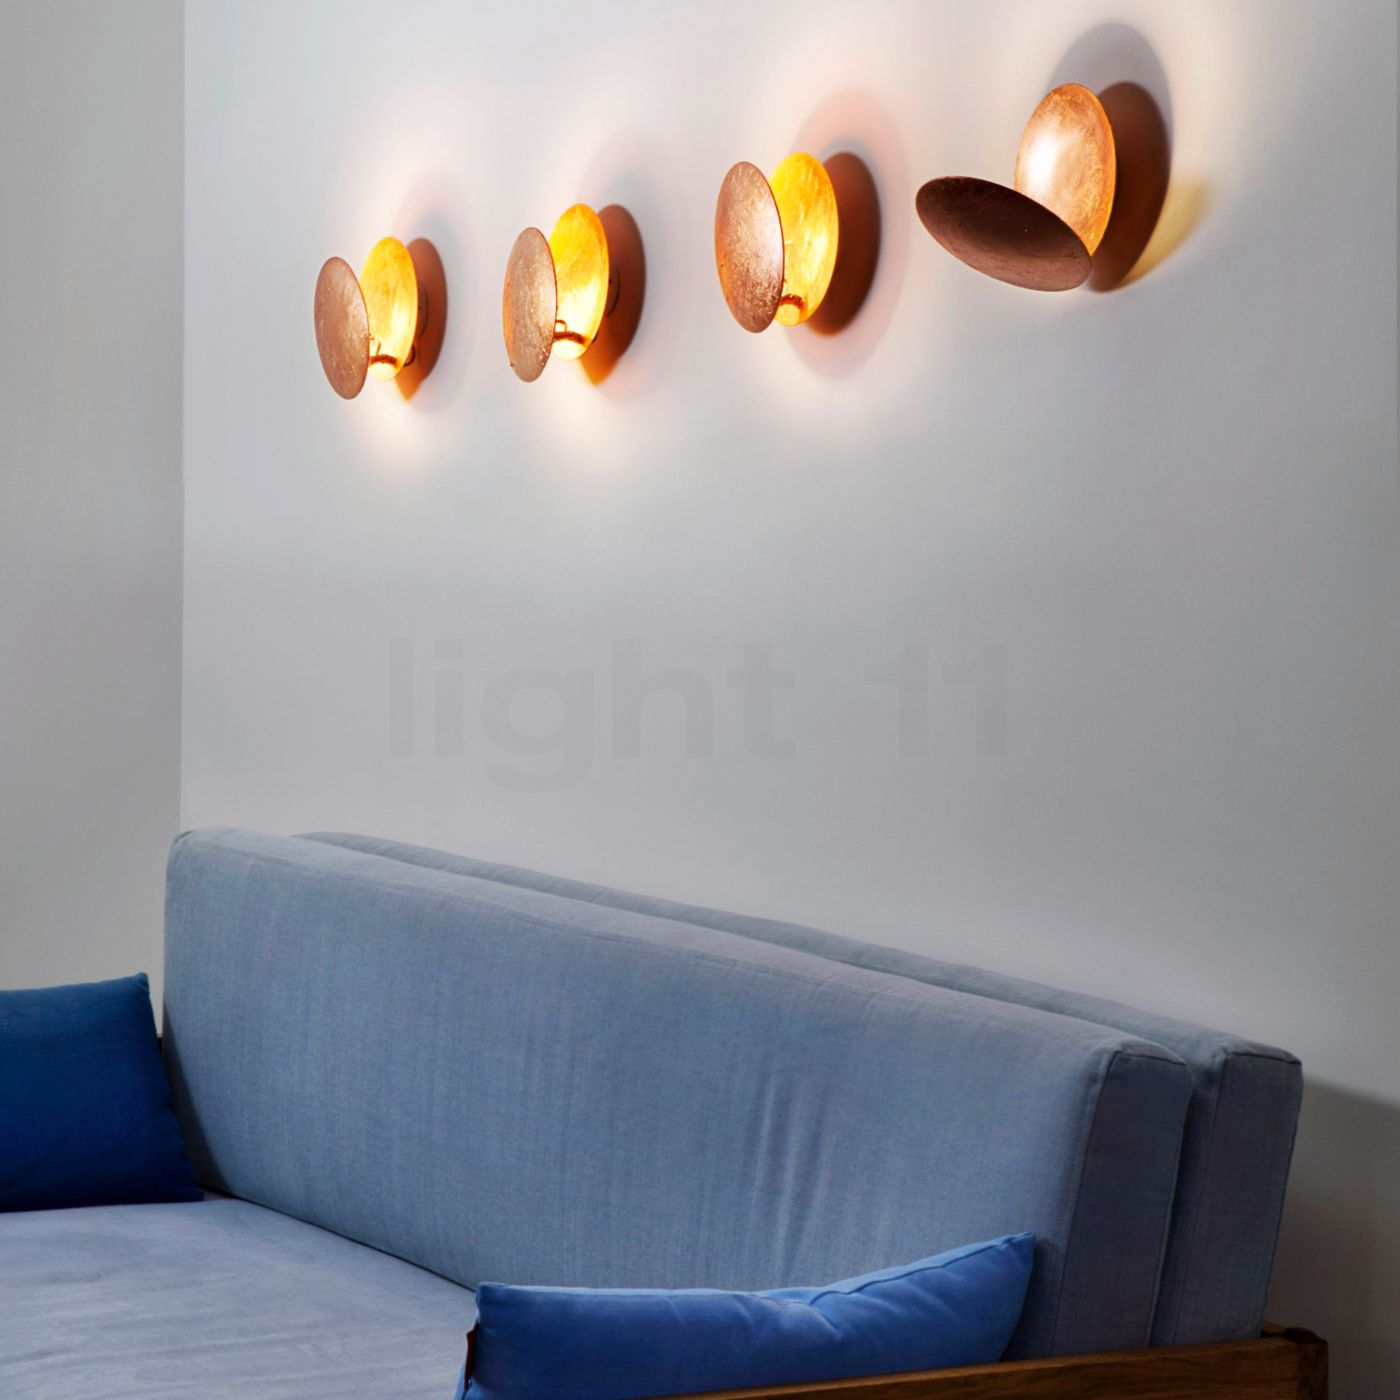 Buy Catellani & Smith Lederam W ø25 cm at light11.eu